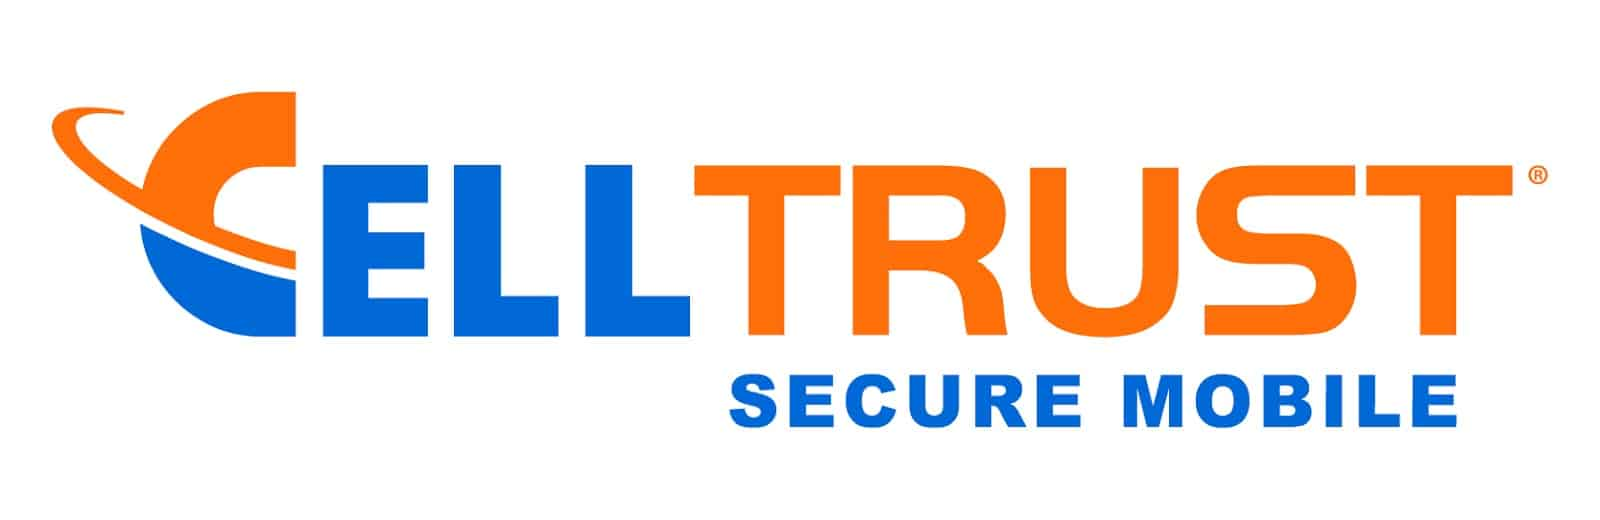 CellTrust logo